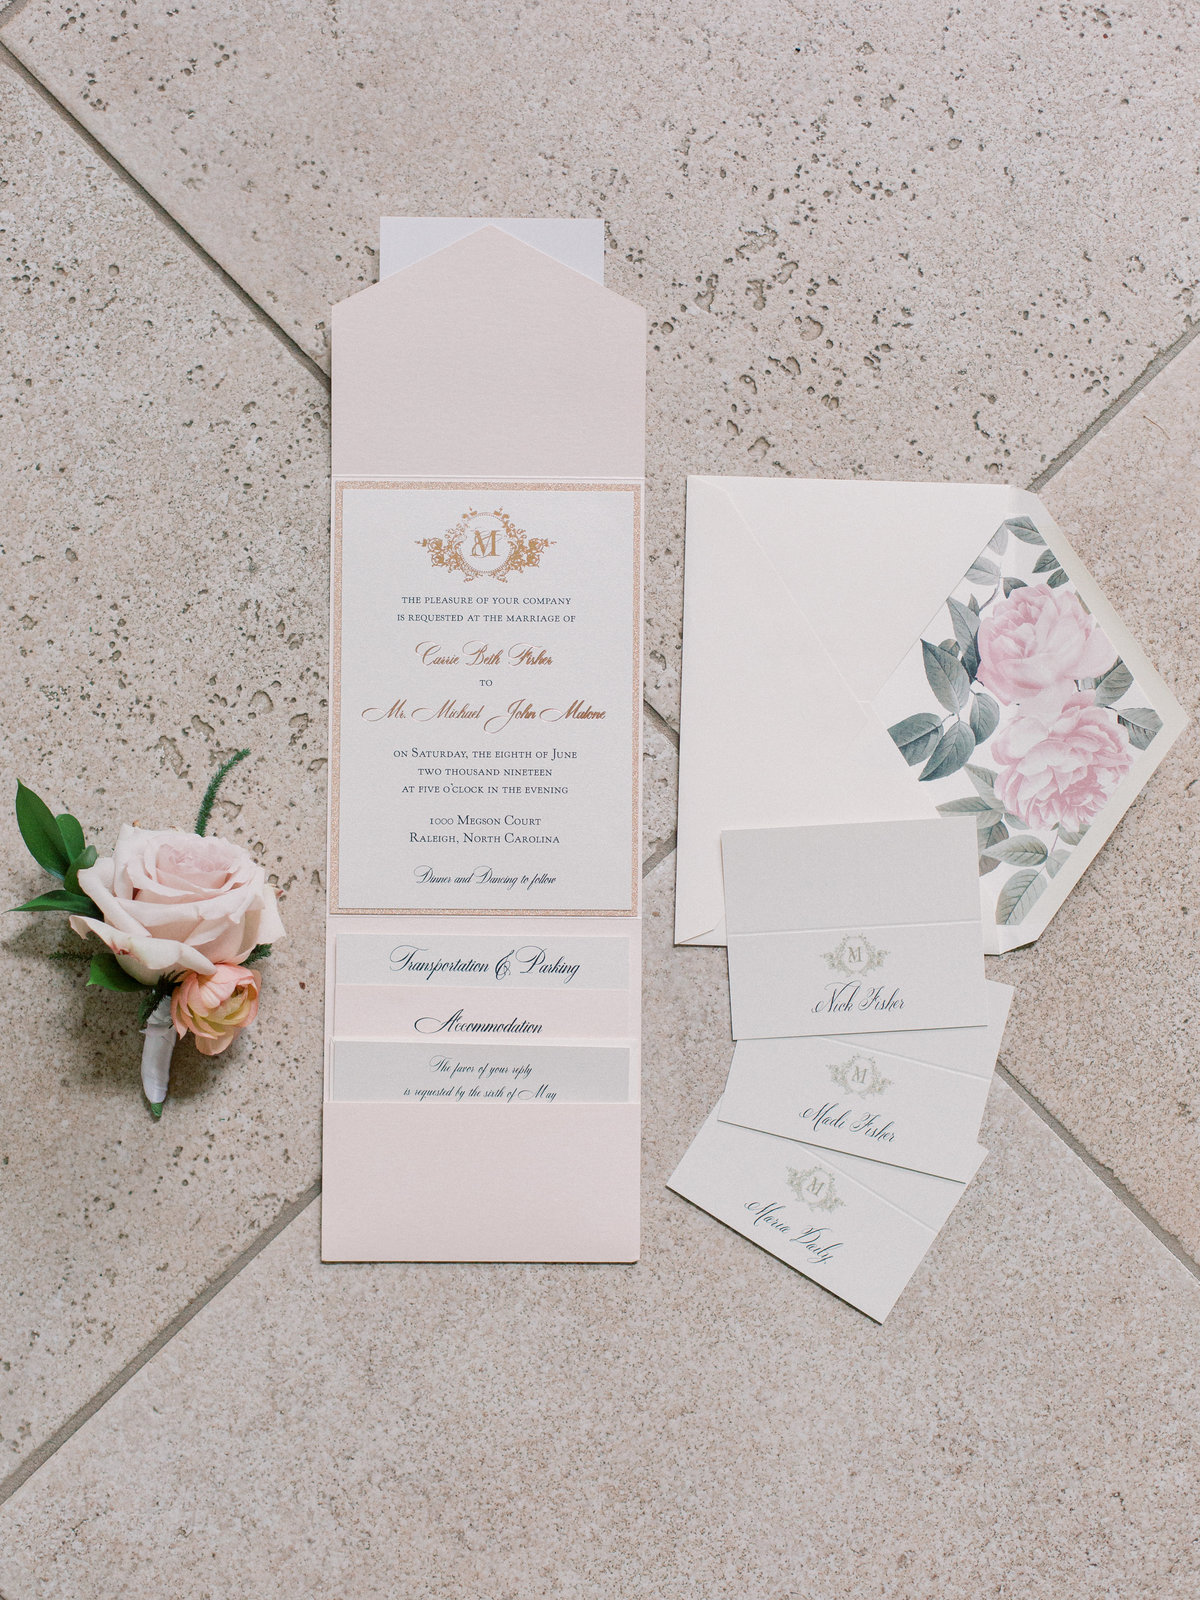 2019-06-08Carrie&MikeWedding-1